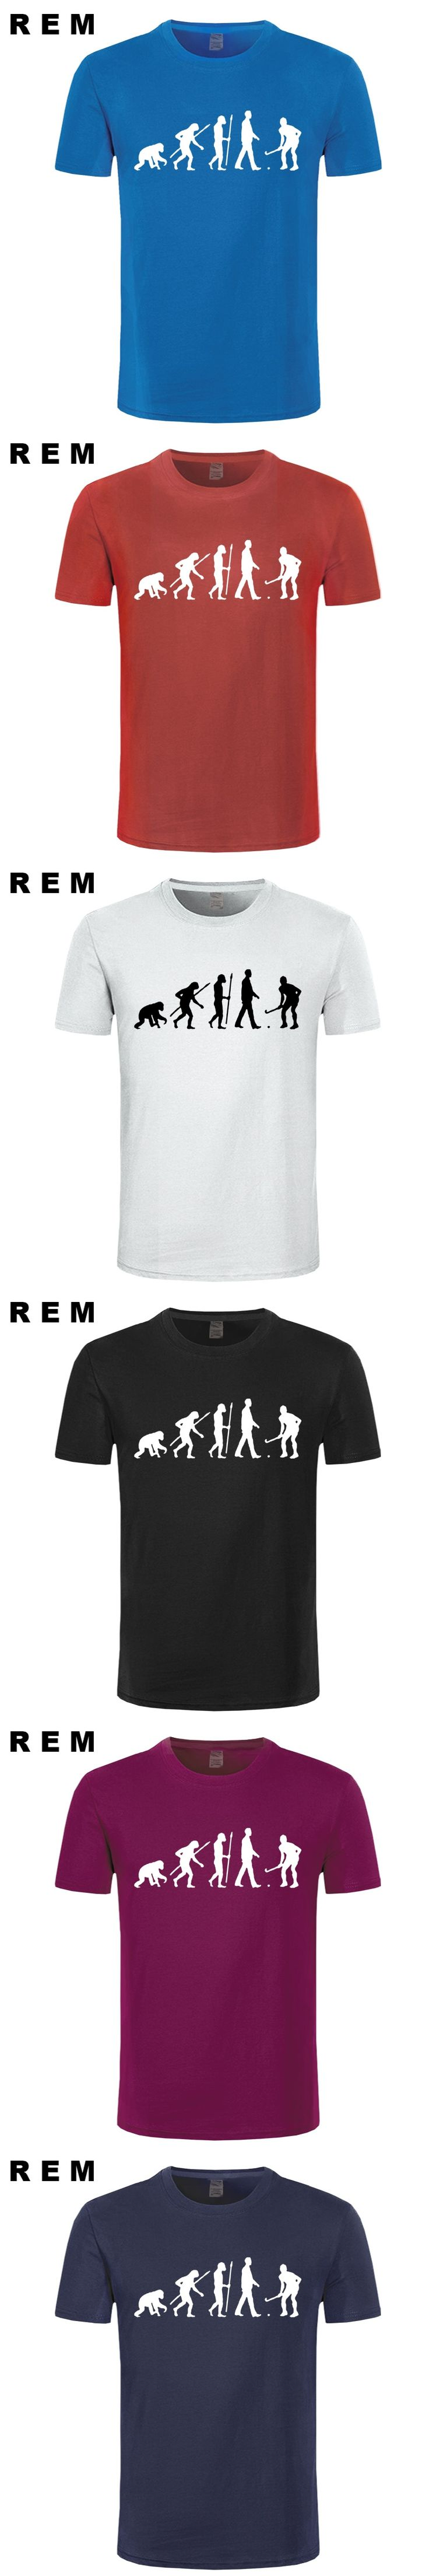 REM casual popular Evolution Field Hockeyer Men's T-Shirt 100% cotton male tops tee hot sell fashion O-Neck T Shirt